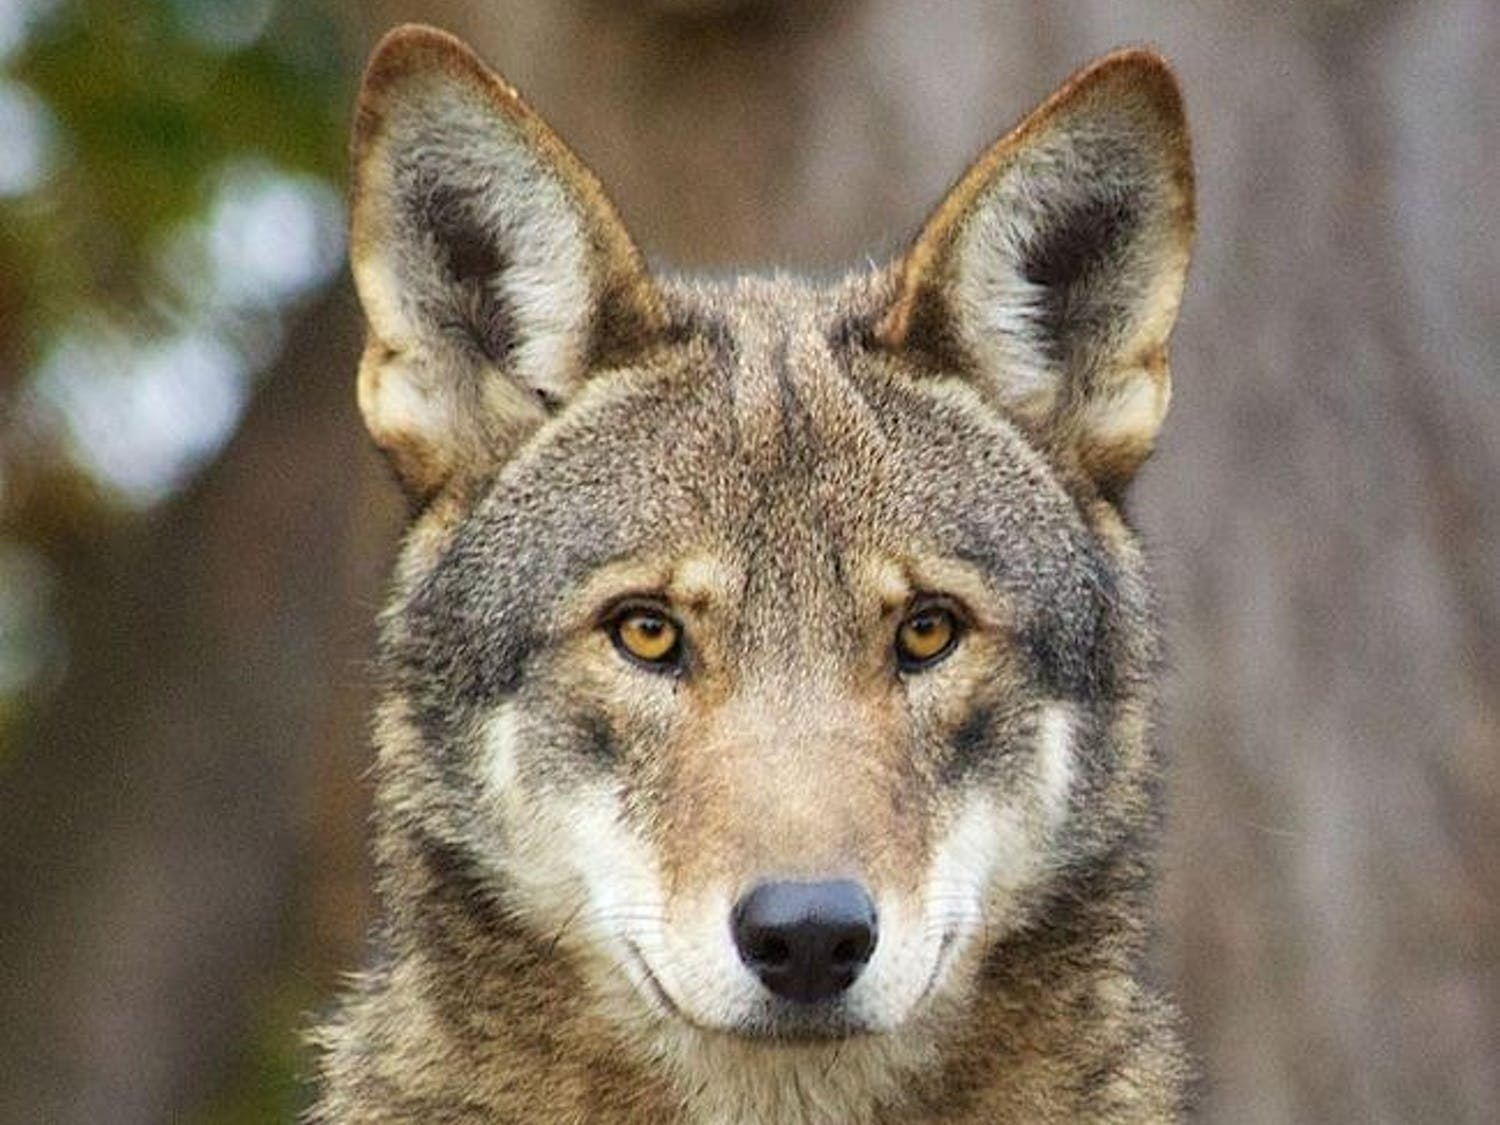 Red wolves are one of the world's most endangered species. Photo courtesy of B. Bartel, U.S. Fish and Wildlife Service.